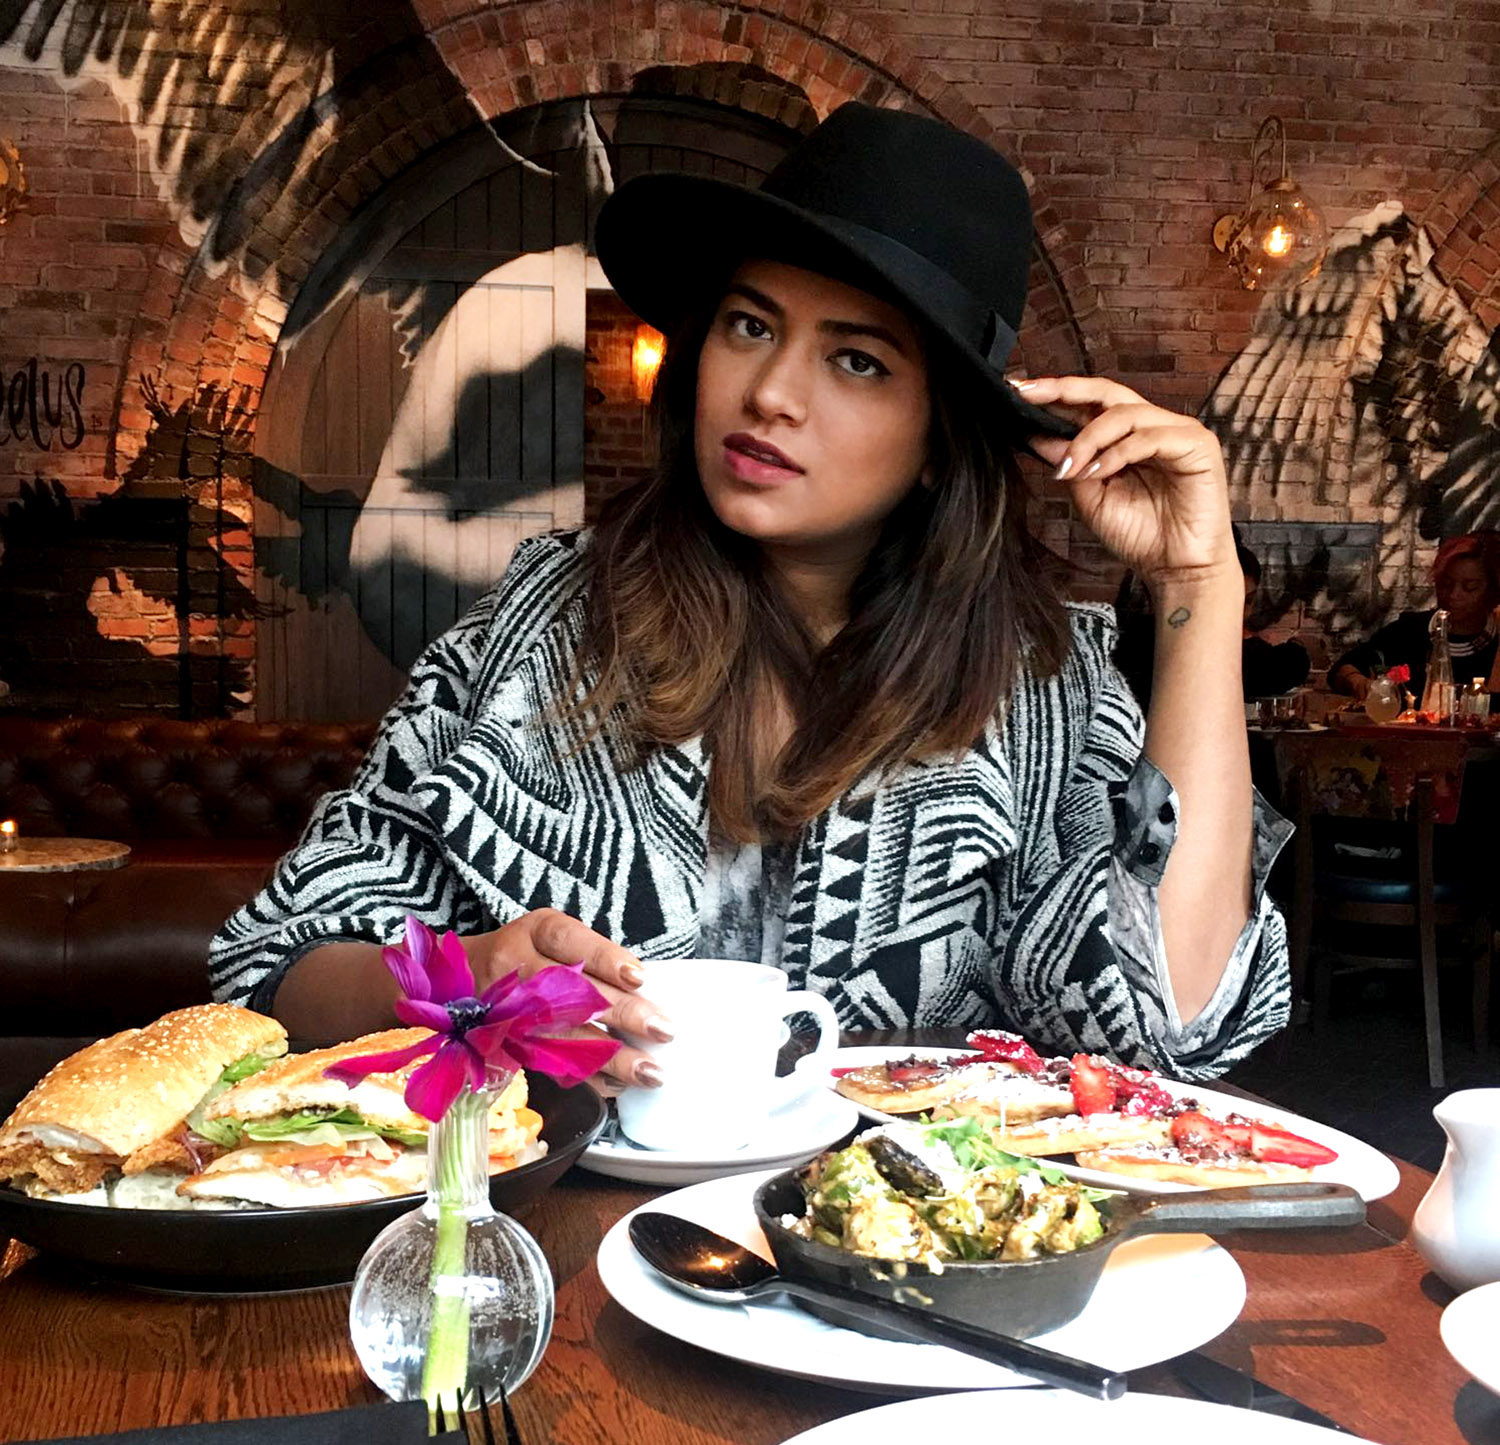 afroza-khan-chic-stylista-nyc-brunch